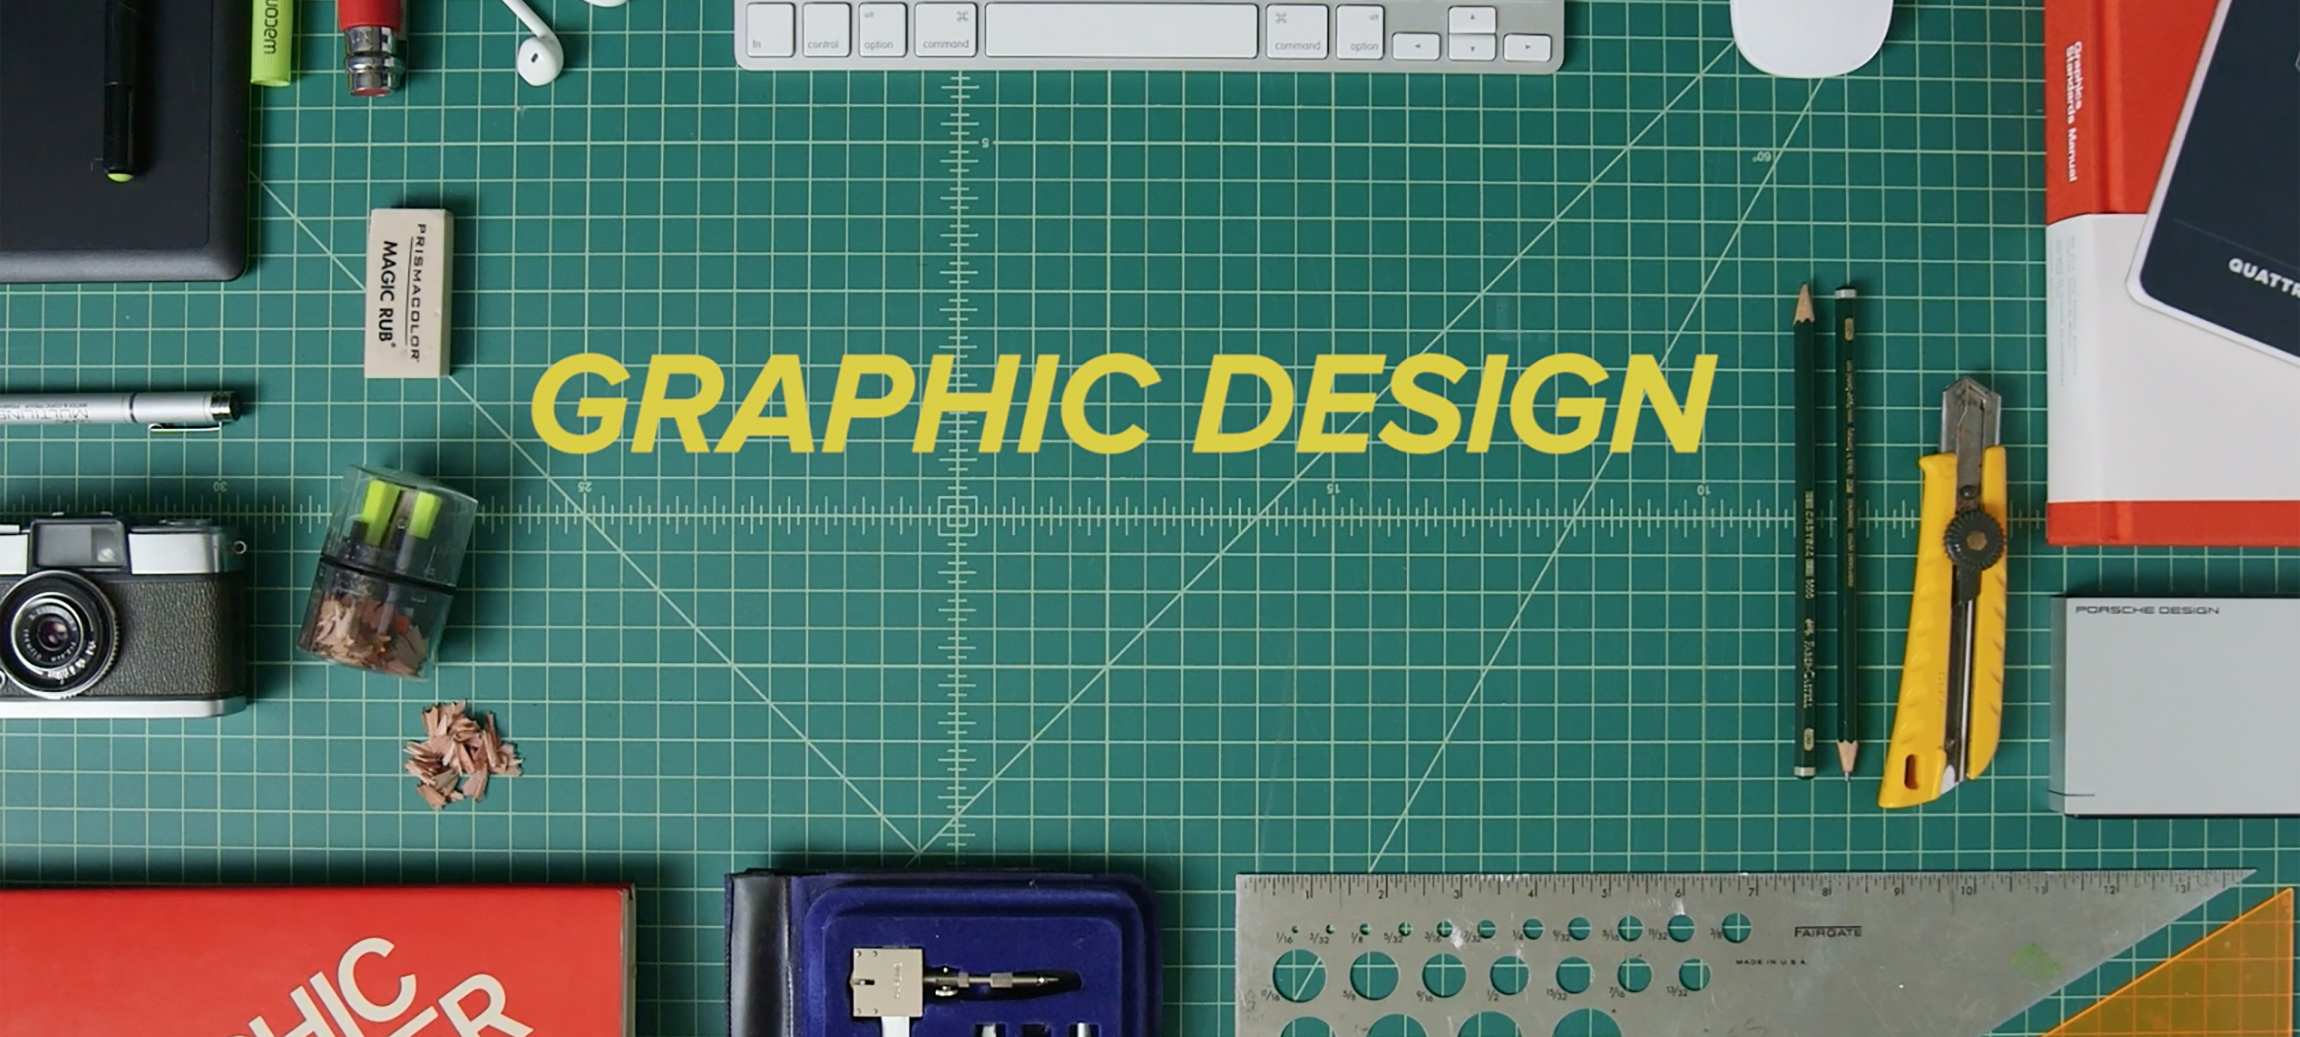 Video: Graphic Design at MECA image